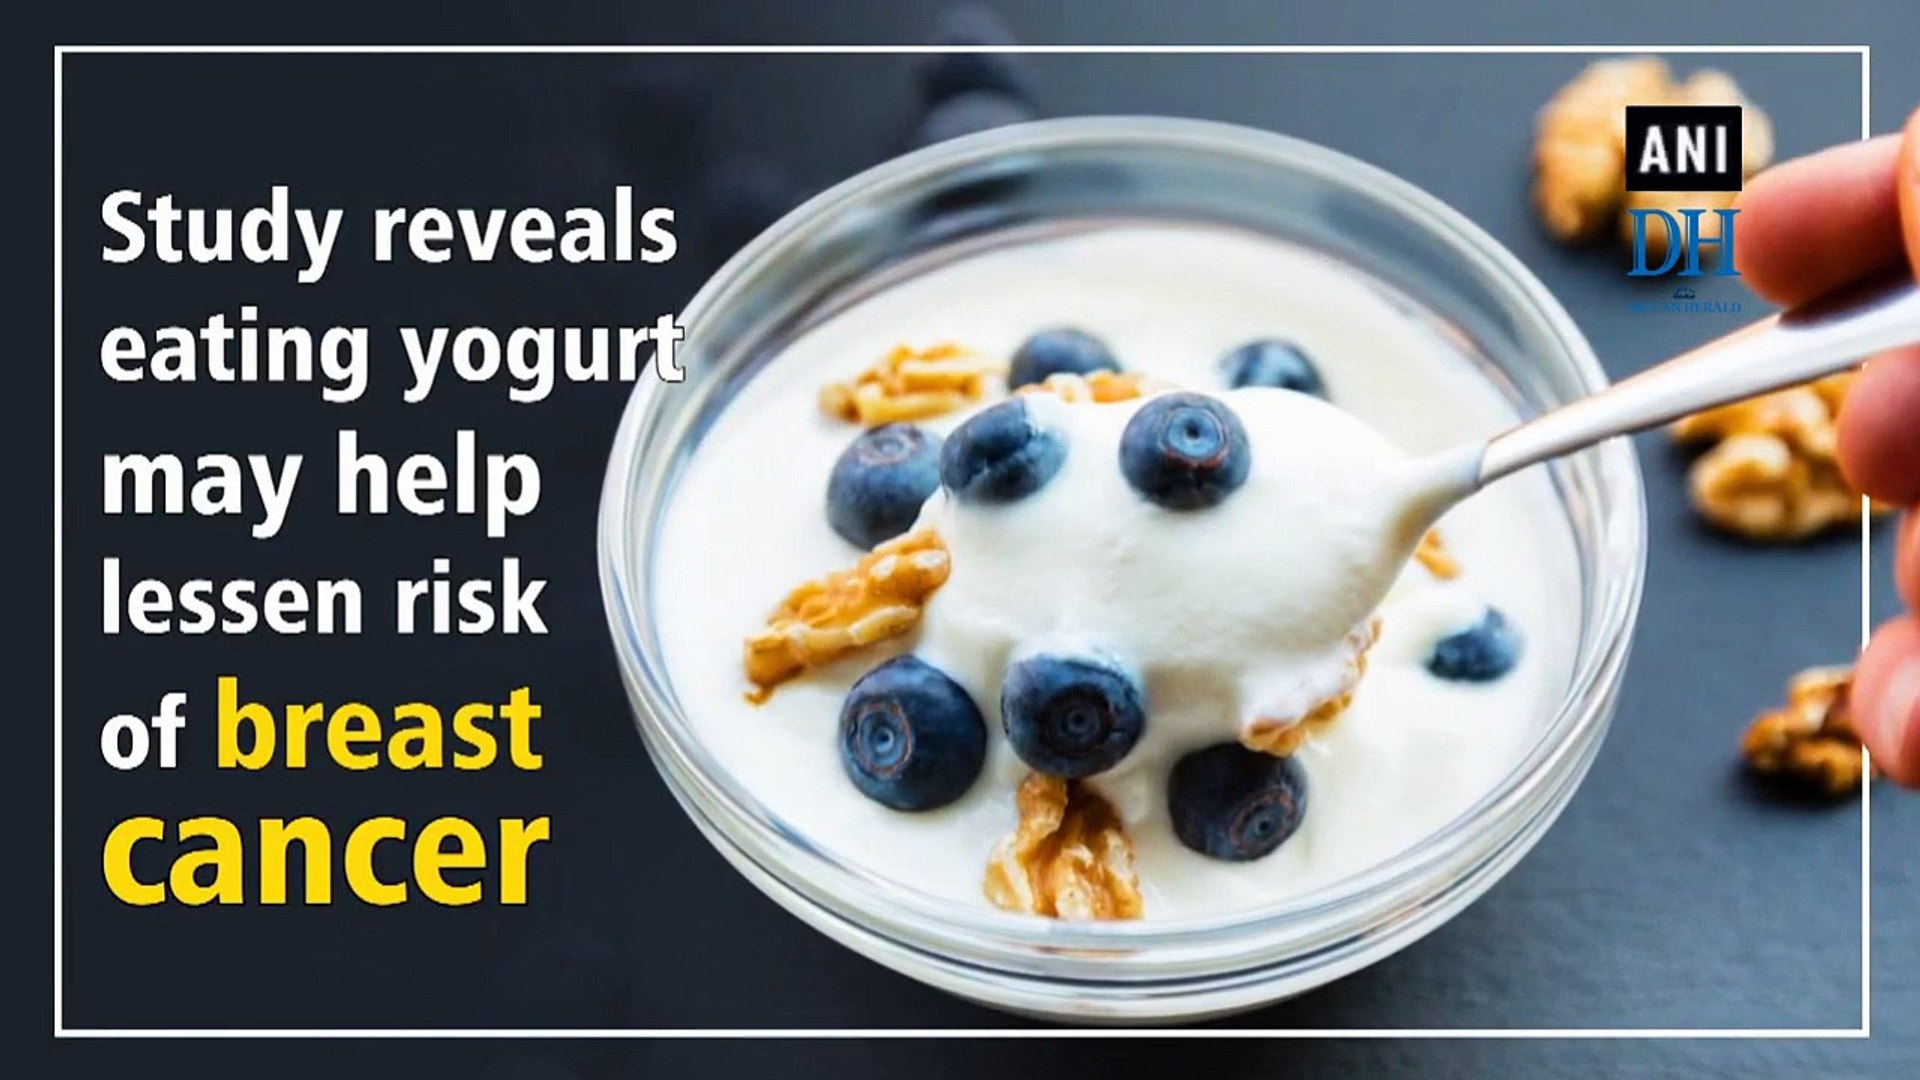 Study reveals eating yogurt may help lessen risk of breast cancer